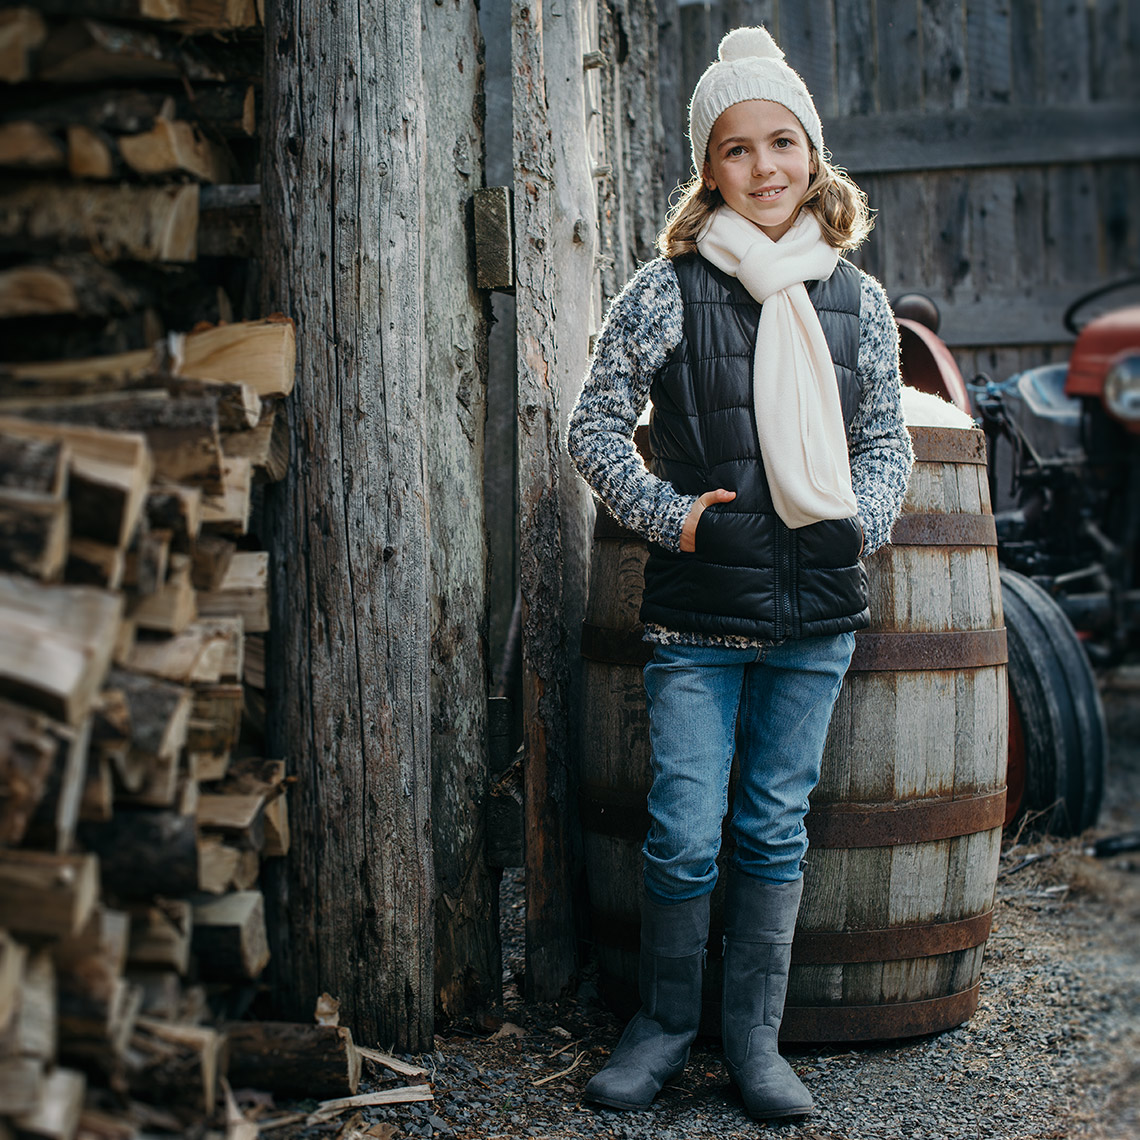 outdoor winter fashion portrait photographer